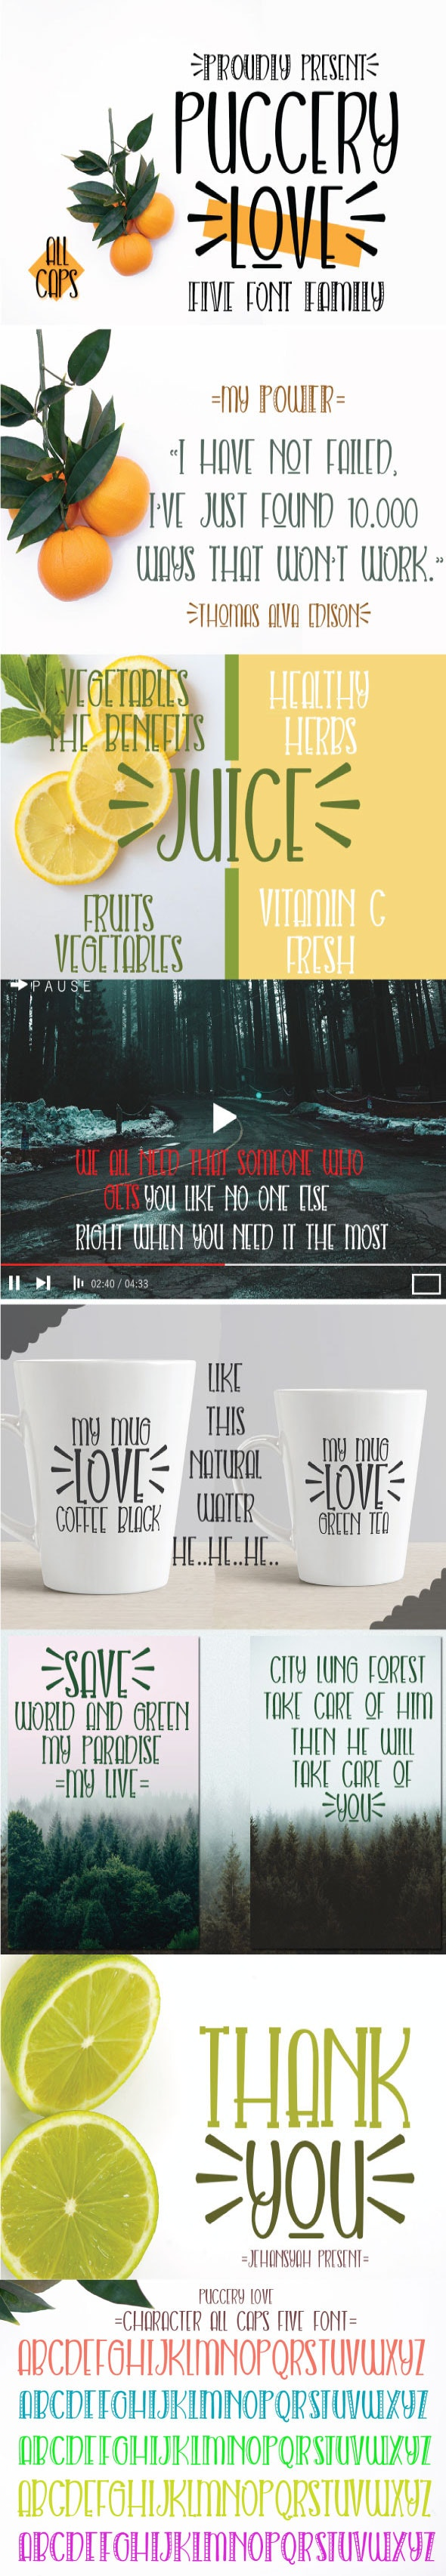 Puccery love - Handwriting Fonts